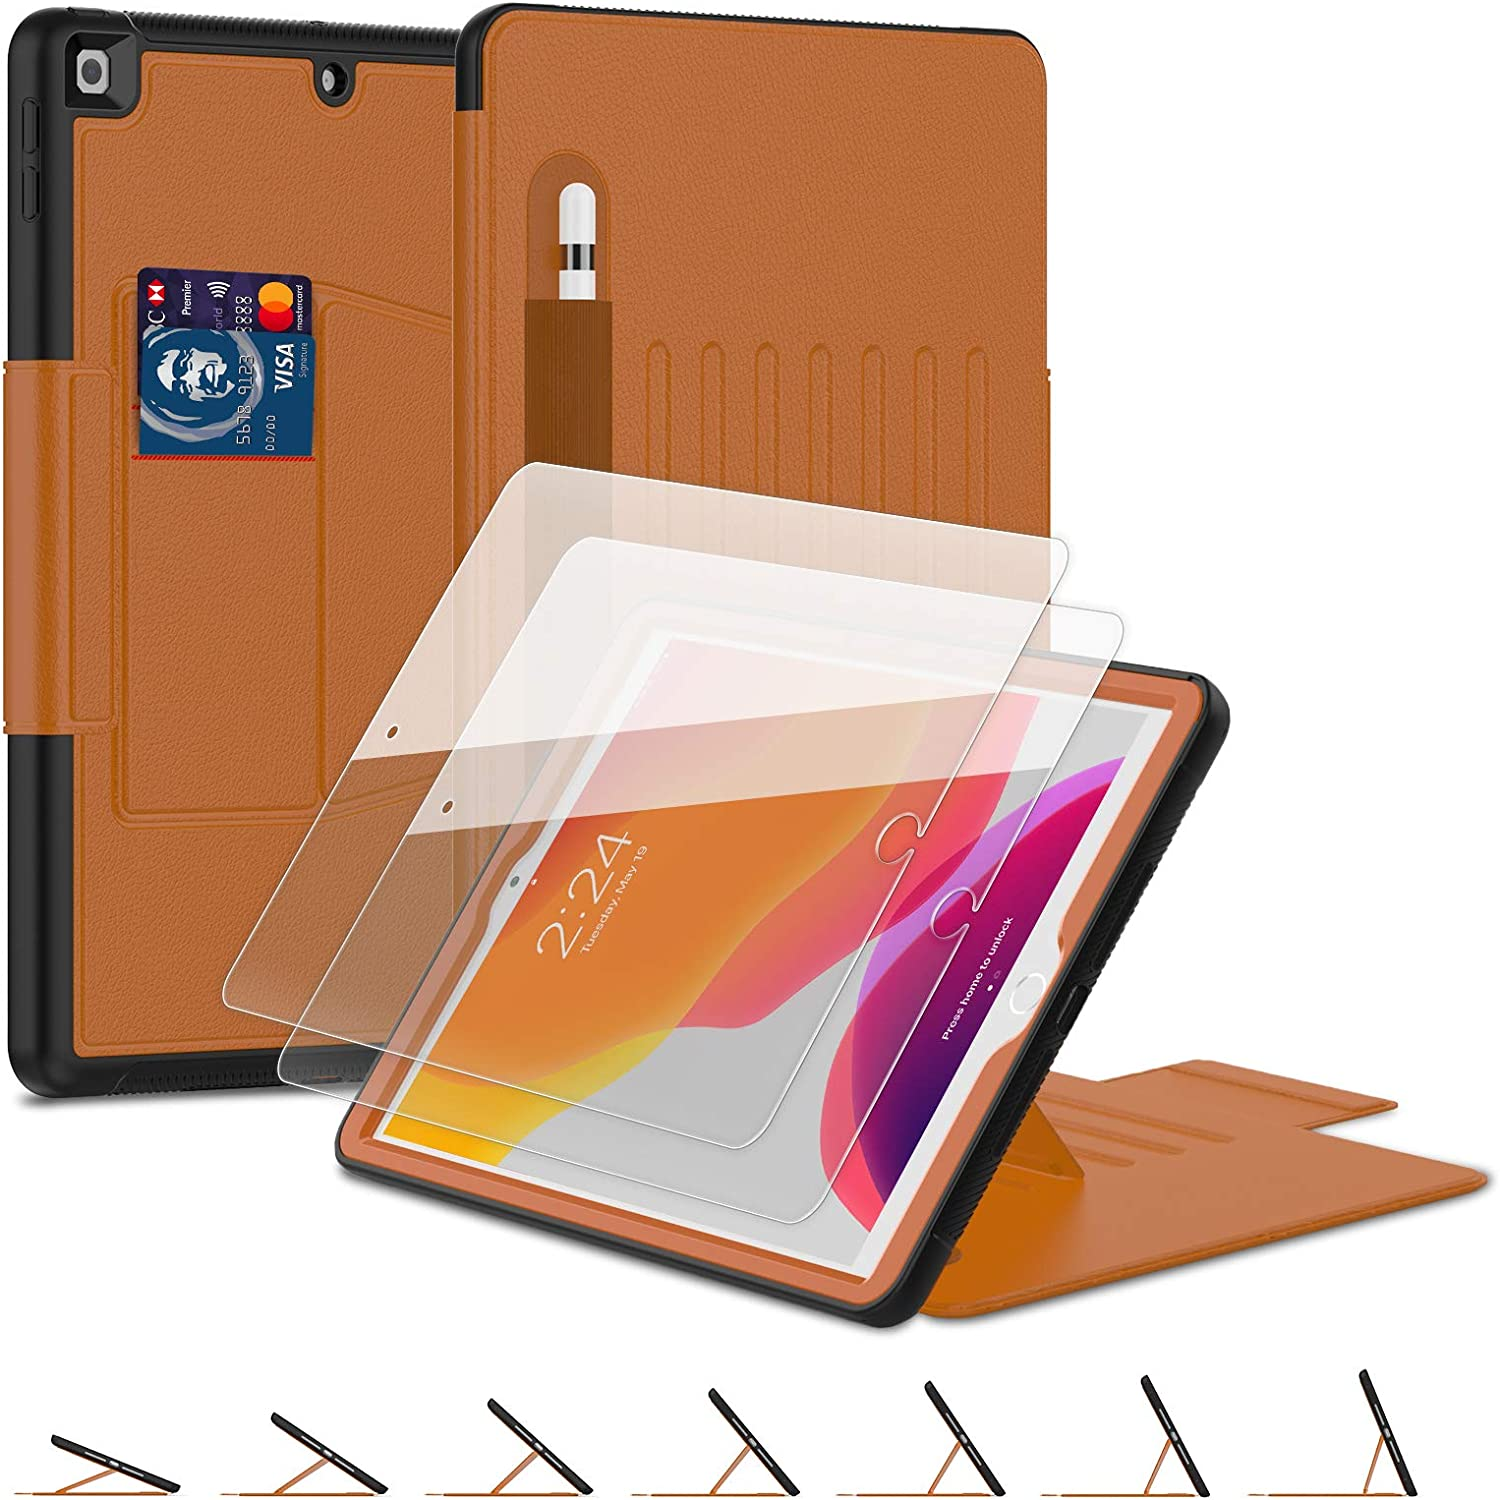 iPad 8th/7th Generation 10.2 Case (2020/2019), [7 Angles Magnetic] BASE MALL Full Body Protective Leather Case with [2 Pack] 9H Tempered Glass Screen Protector, Pencil Holder, Sleep/Wake Cover (Brown)